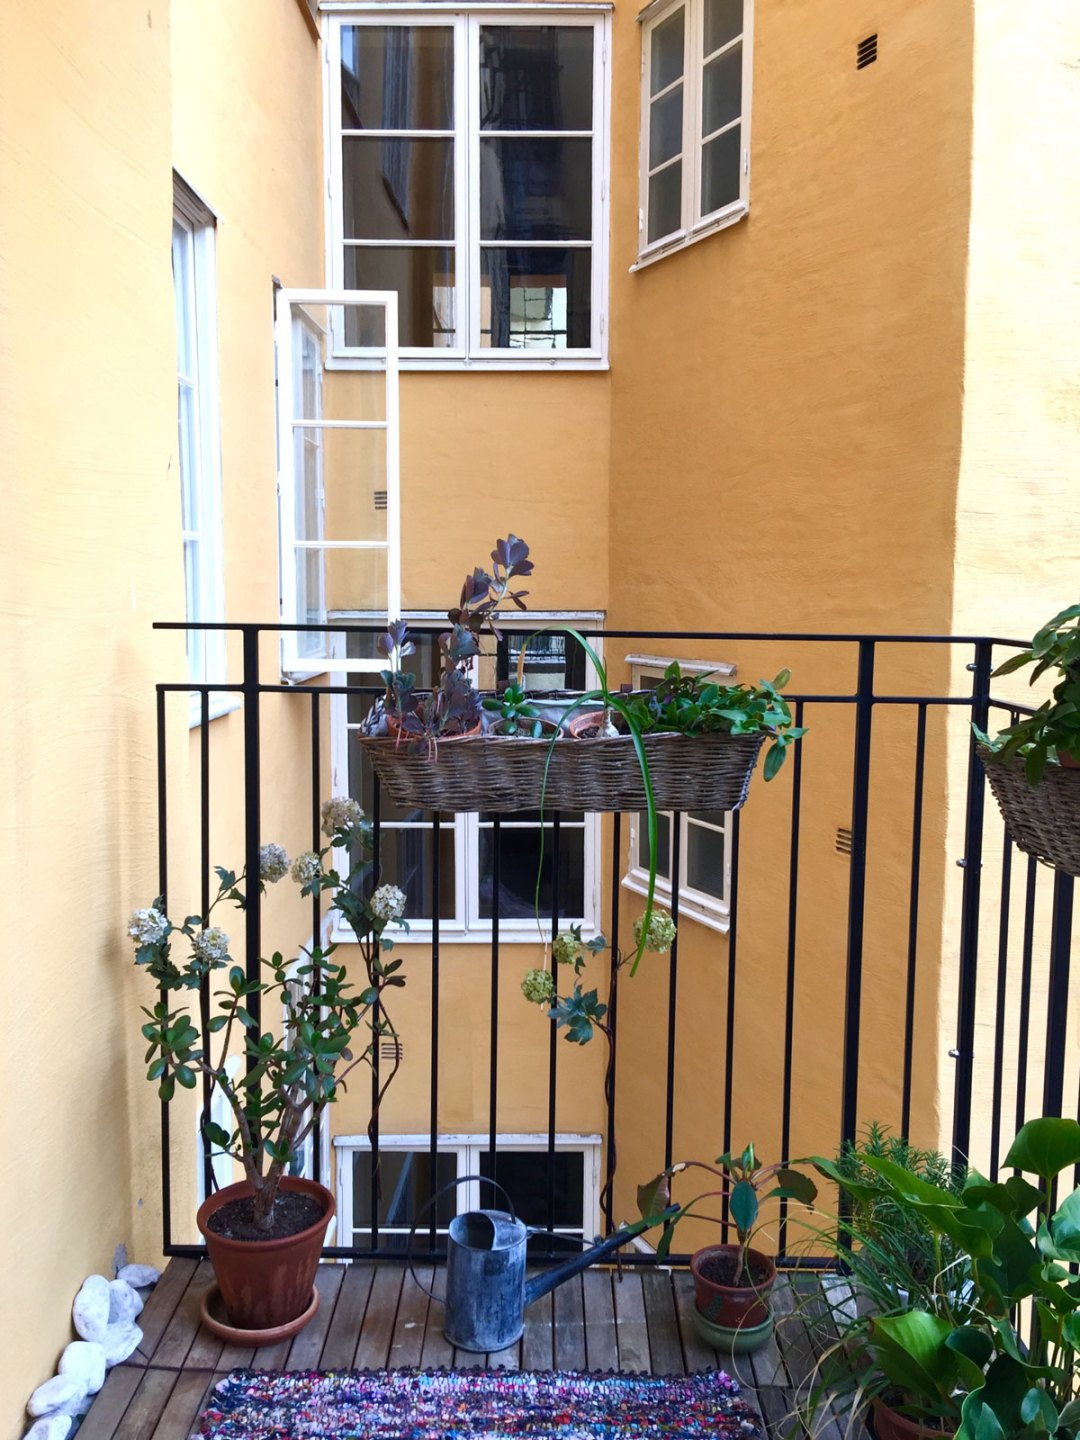 soder-airbnb-balcony-1